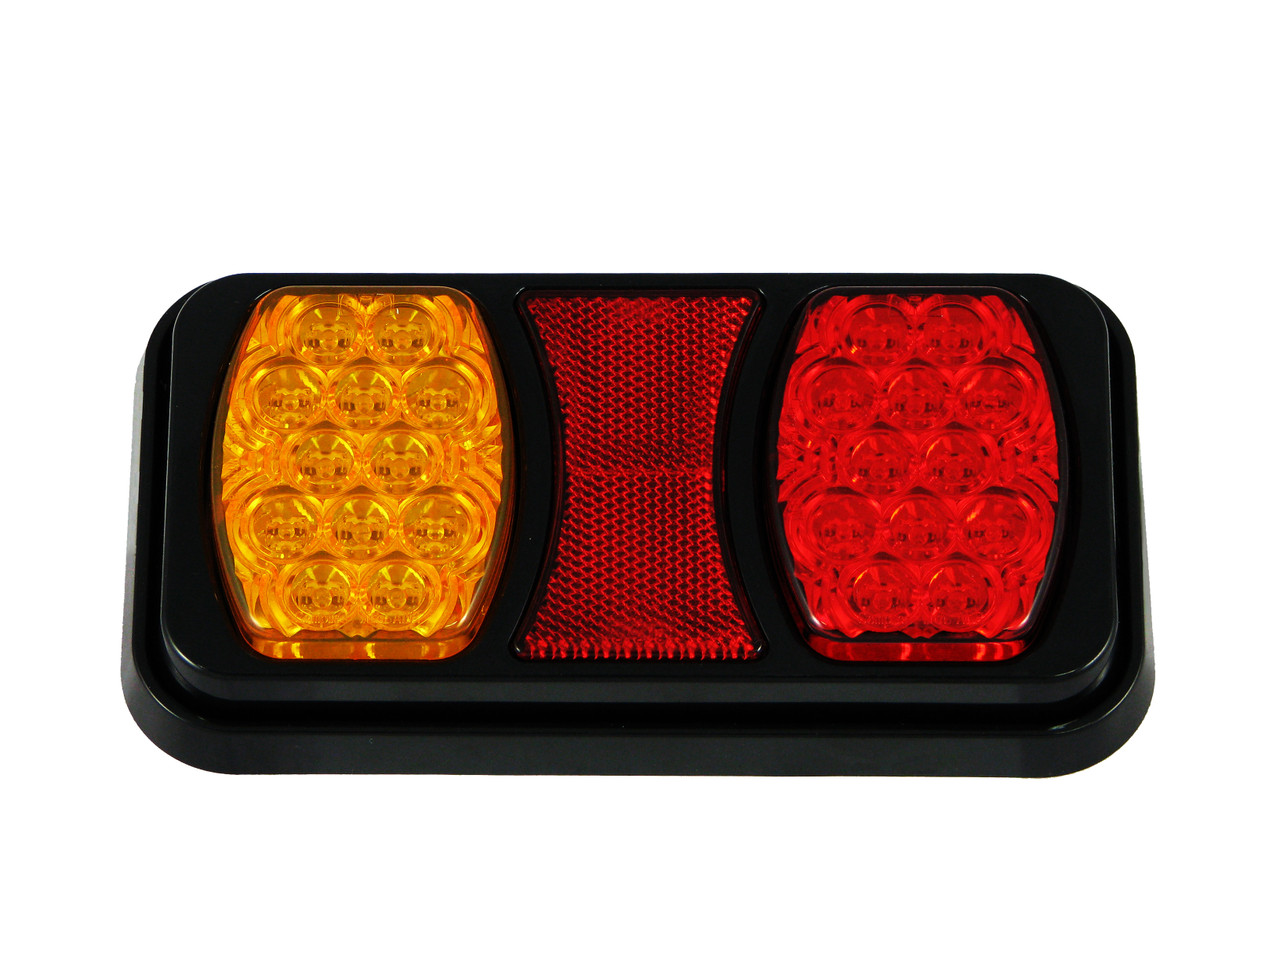 Compact LED Tail Light. Stop, Tail Indicator Lamp with built-in Reflectors. Quality, Tough Light. Caravan Friendly. Multi-Volt 12 & 24 Volt Systems. BR80AR. Twin Module LED Light.  Truck, Trailer, Ute  or Caravan Tail Light Assembly. Built-in Reflector. Great Quality Tail Light. Weather, Vibration and Dust Proof. Ultimate LED